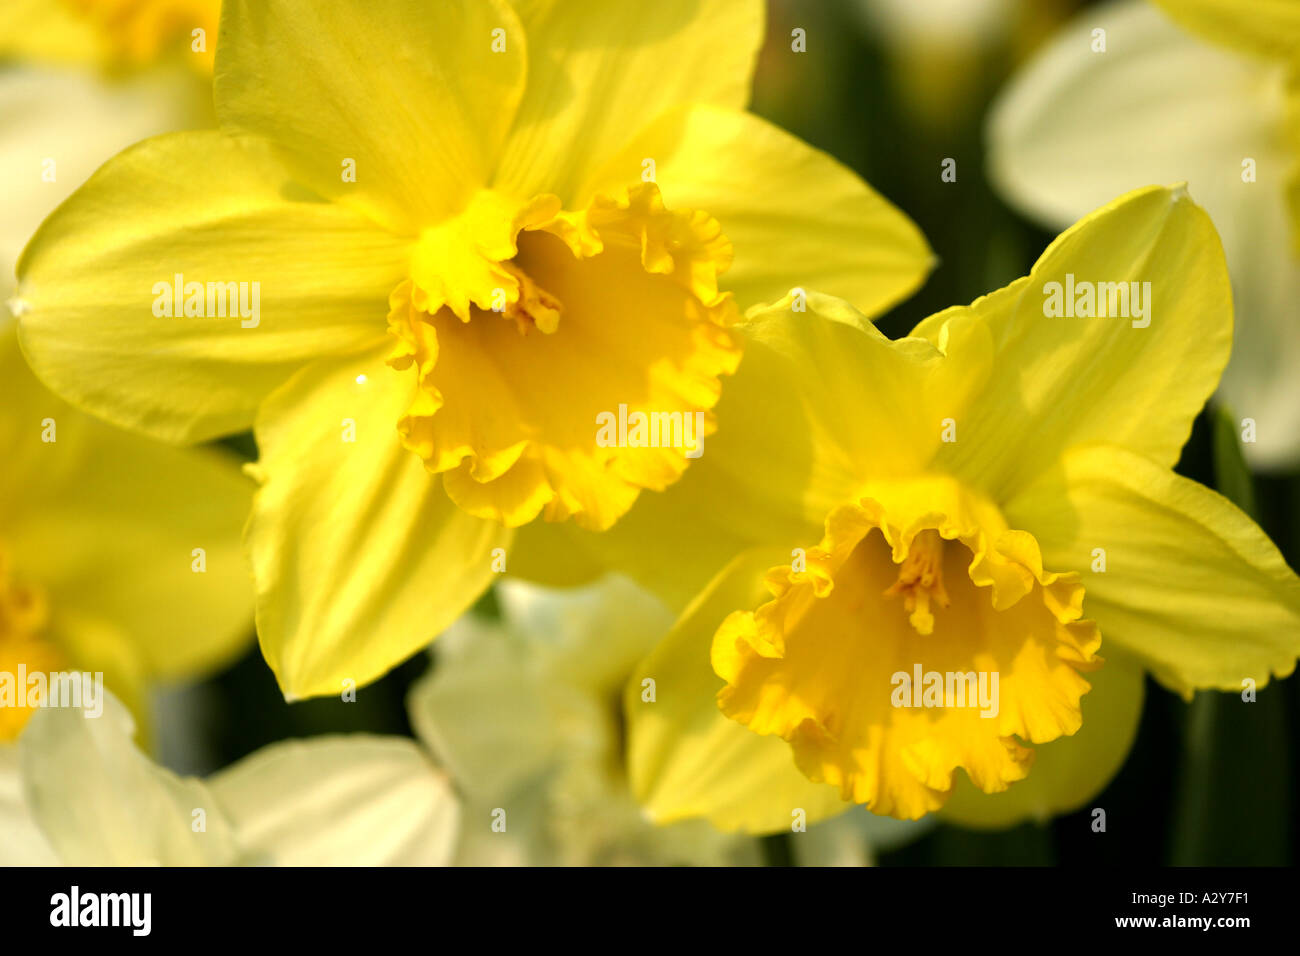 Flowers Shrubs Orchid Yellow Landscape Stock Photos Flowers Shrubs